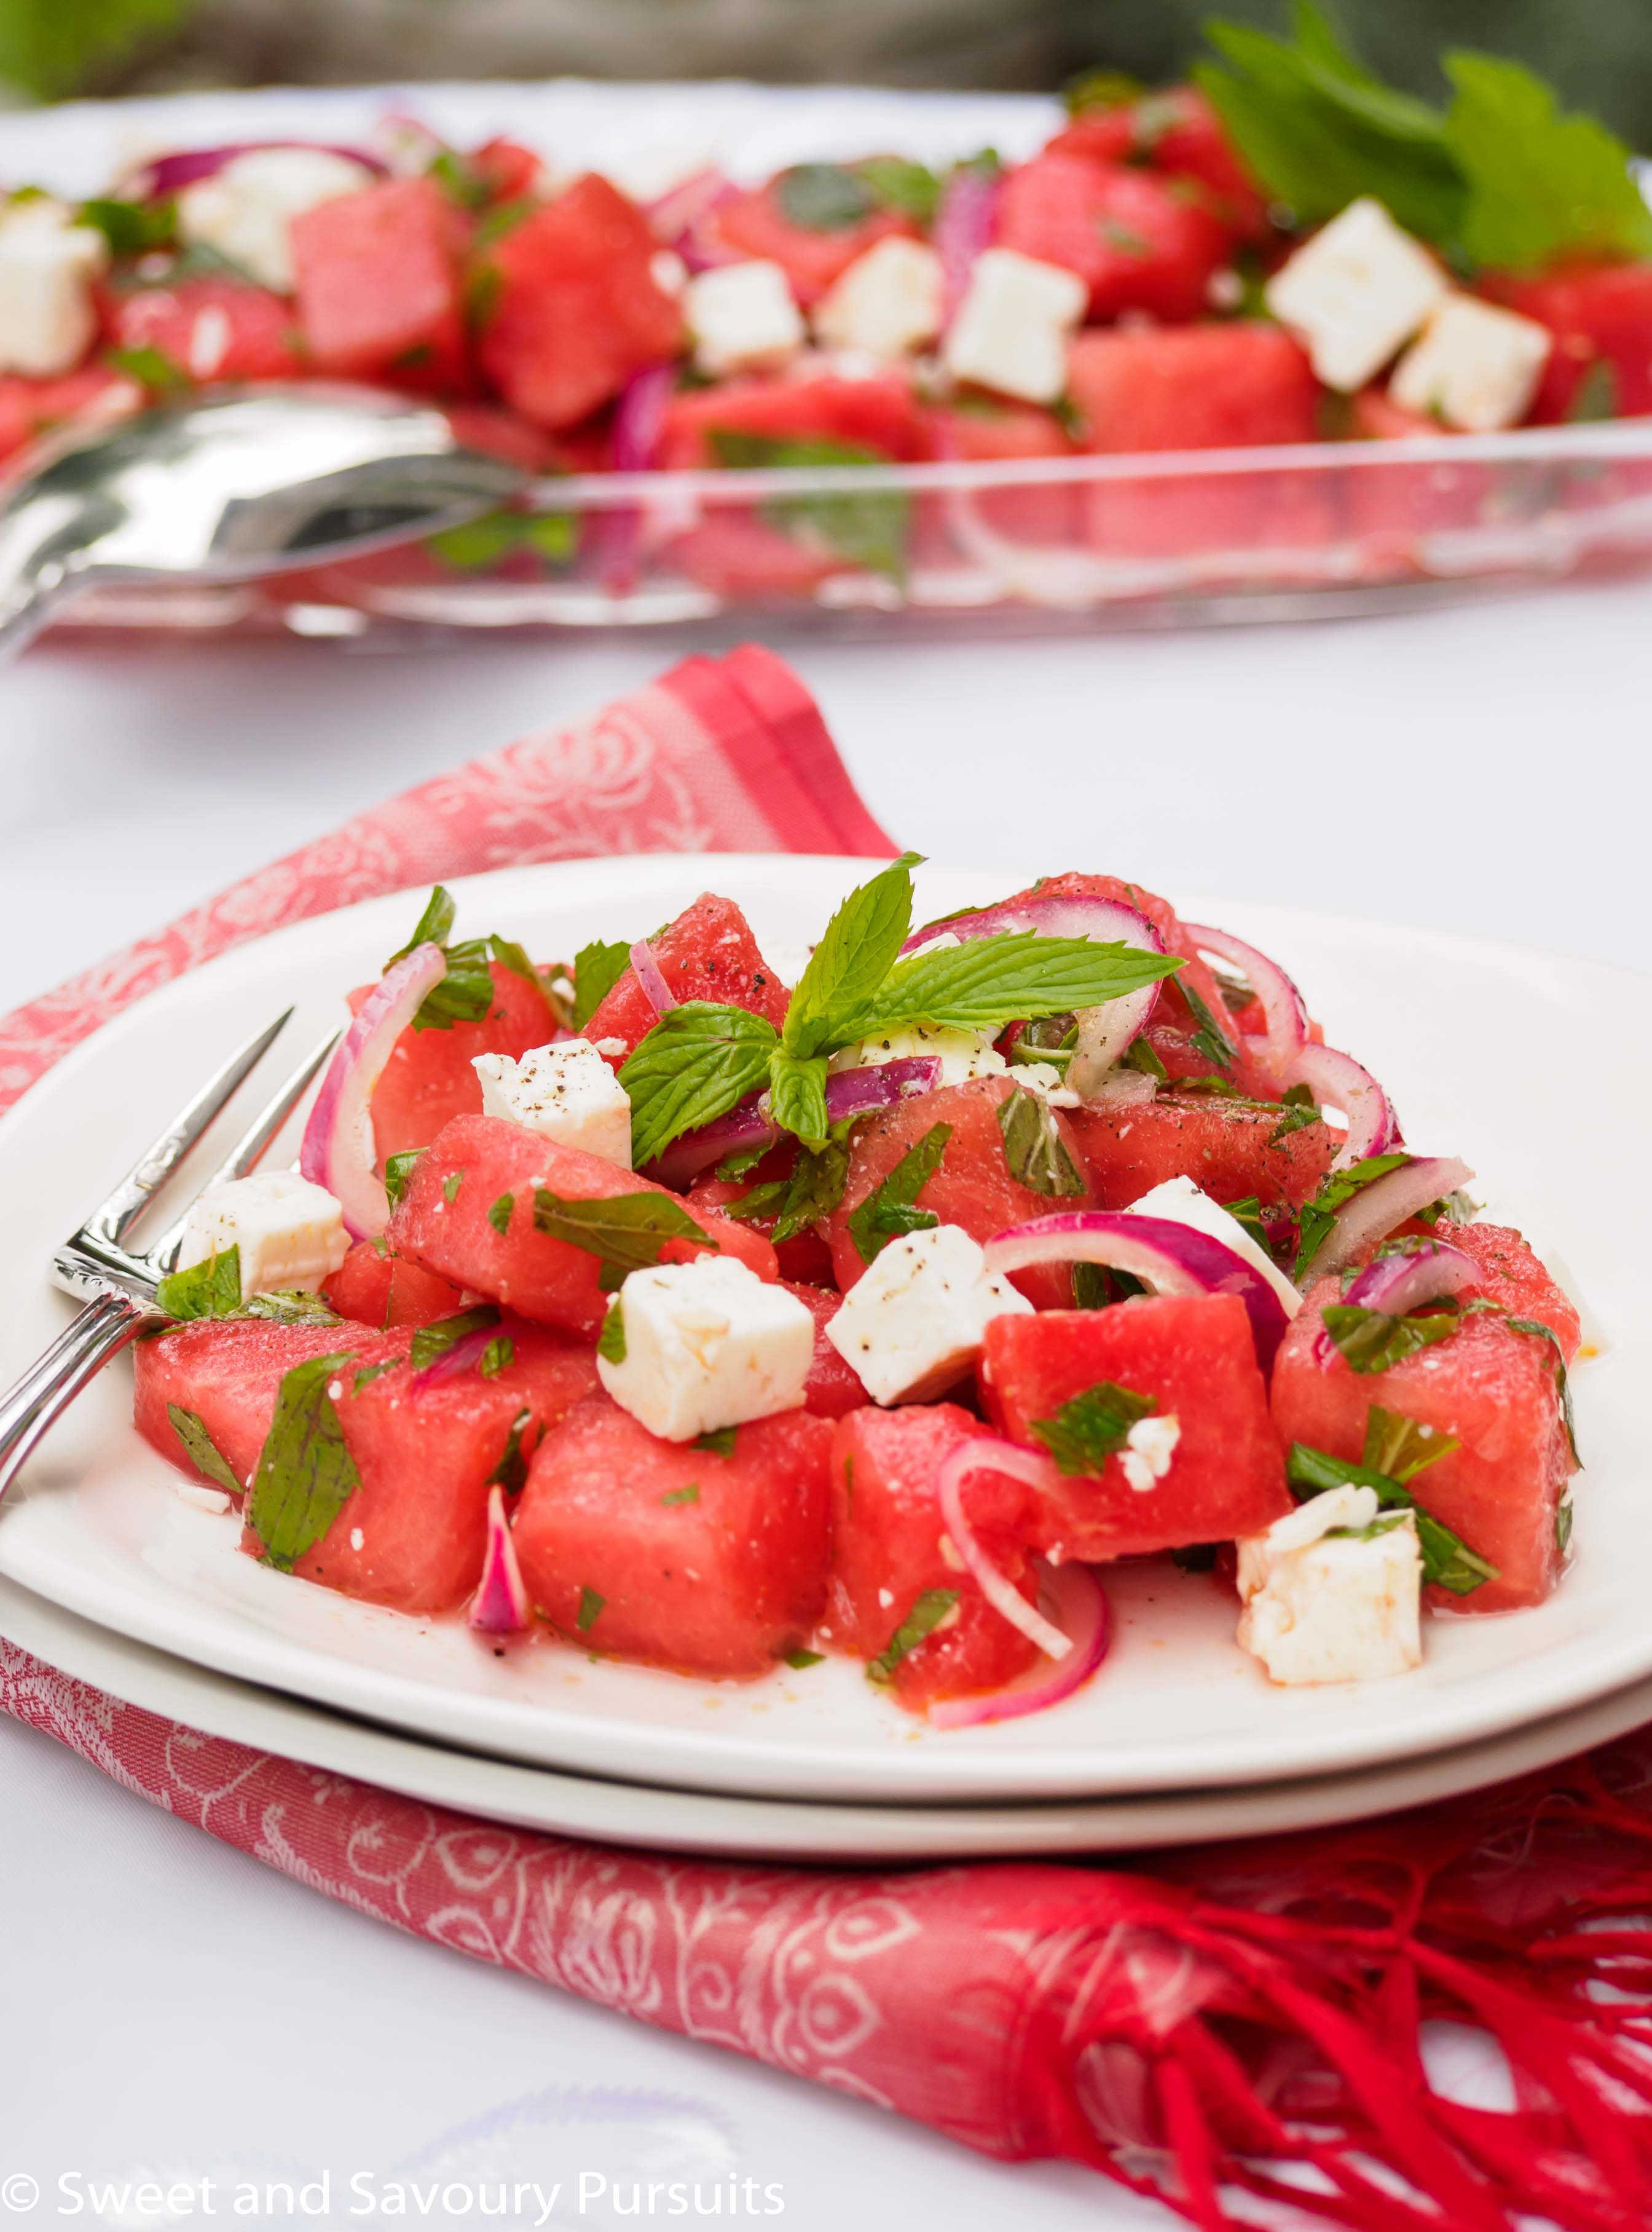 Watermelon and Feta Salad is the perfect summer salad. It's incredibly refreshing and combines sweetness, saltiness and tanginess all in one